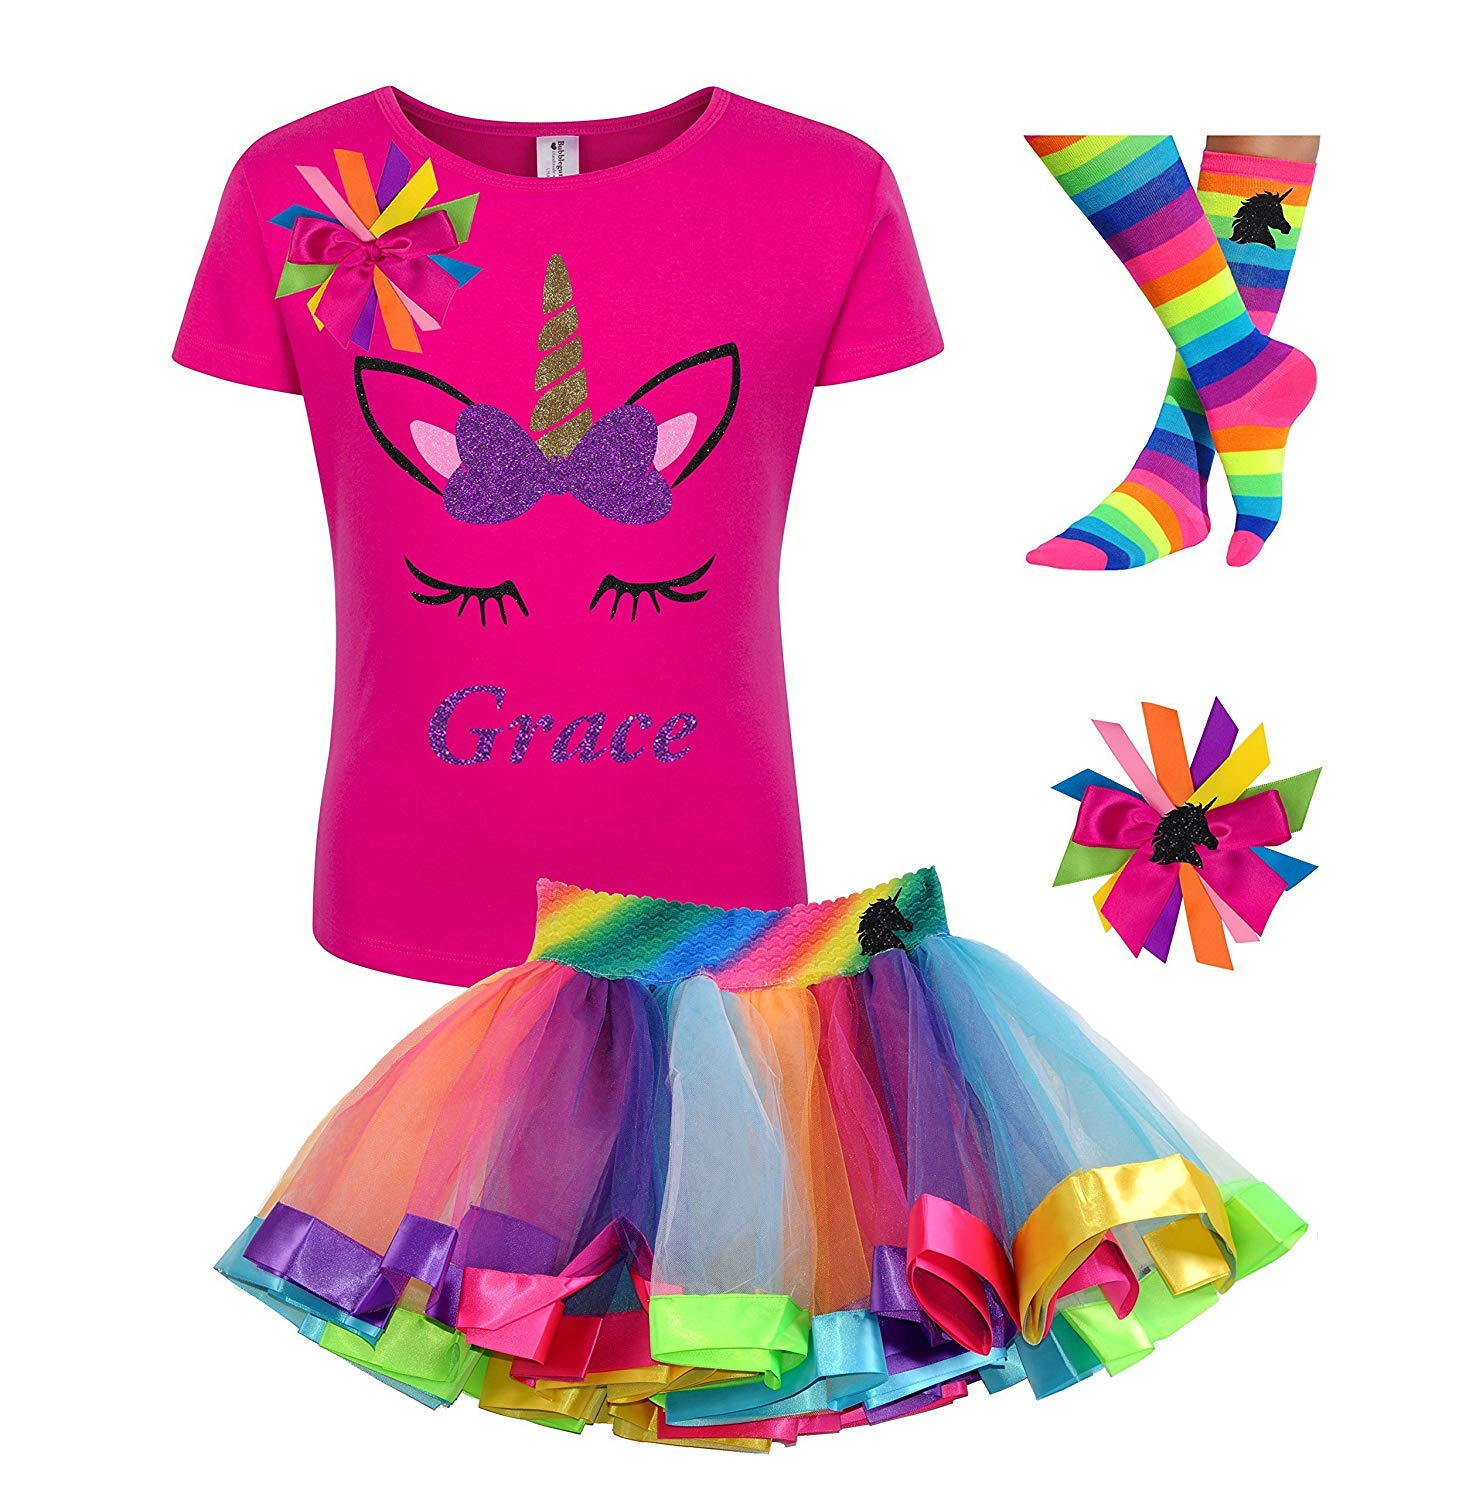 2c699bd9 Get Quotations · Custom Unicorn Shirt Rainbow Tutu Outfit Girls Birthday  Purple 4PC Gift Set Personalized Name